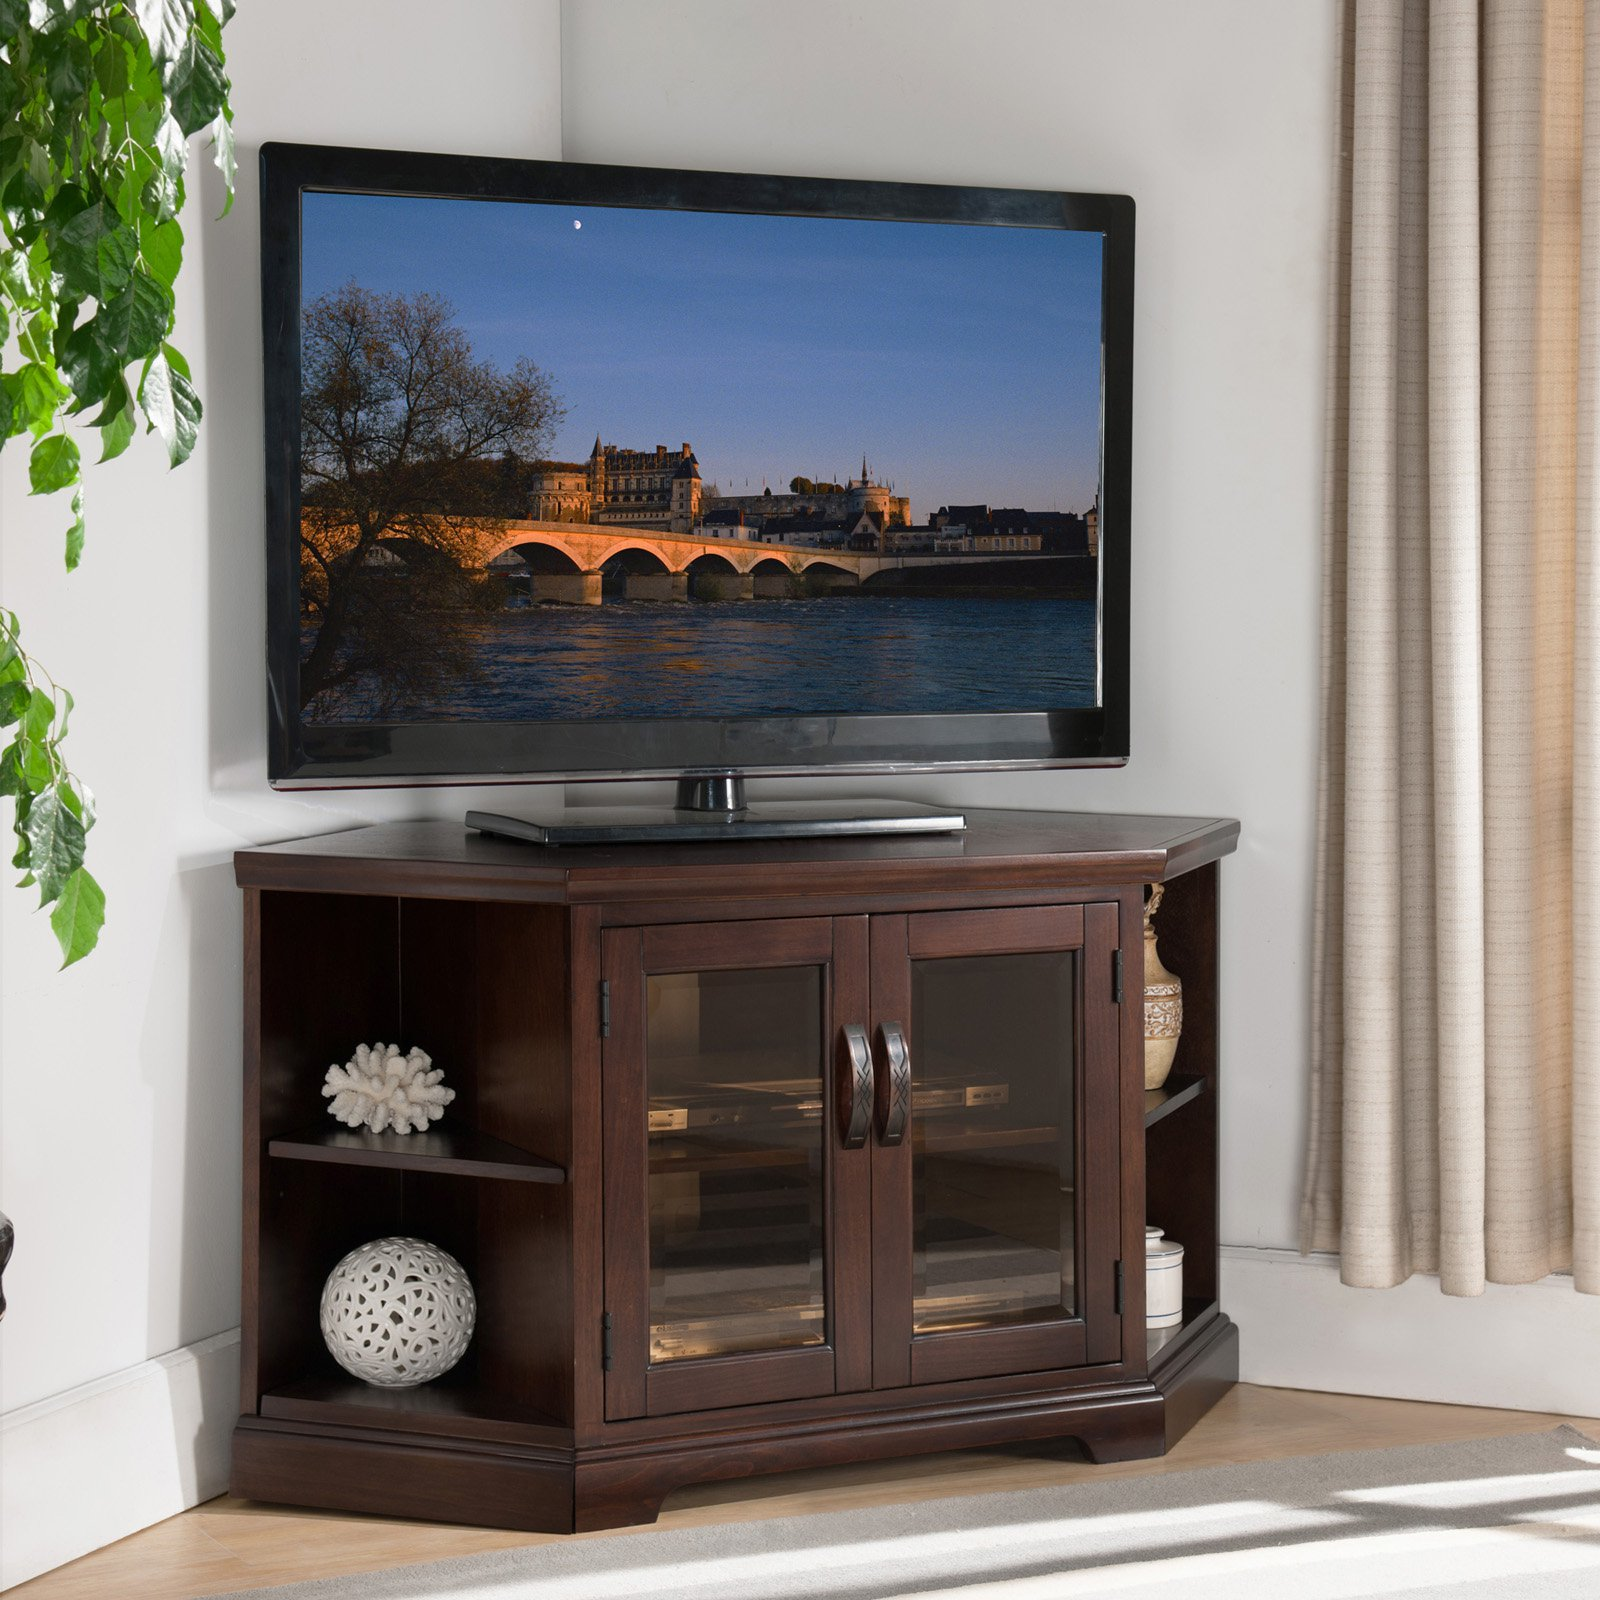 "Leick Home 46"" Corner TV Stand w/Bookcase for TV's up to 50"", Chocolate Cherry and Bronze Glass"